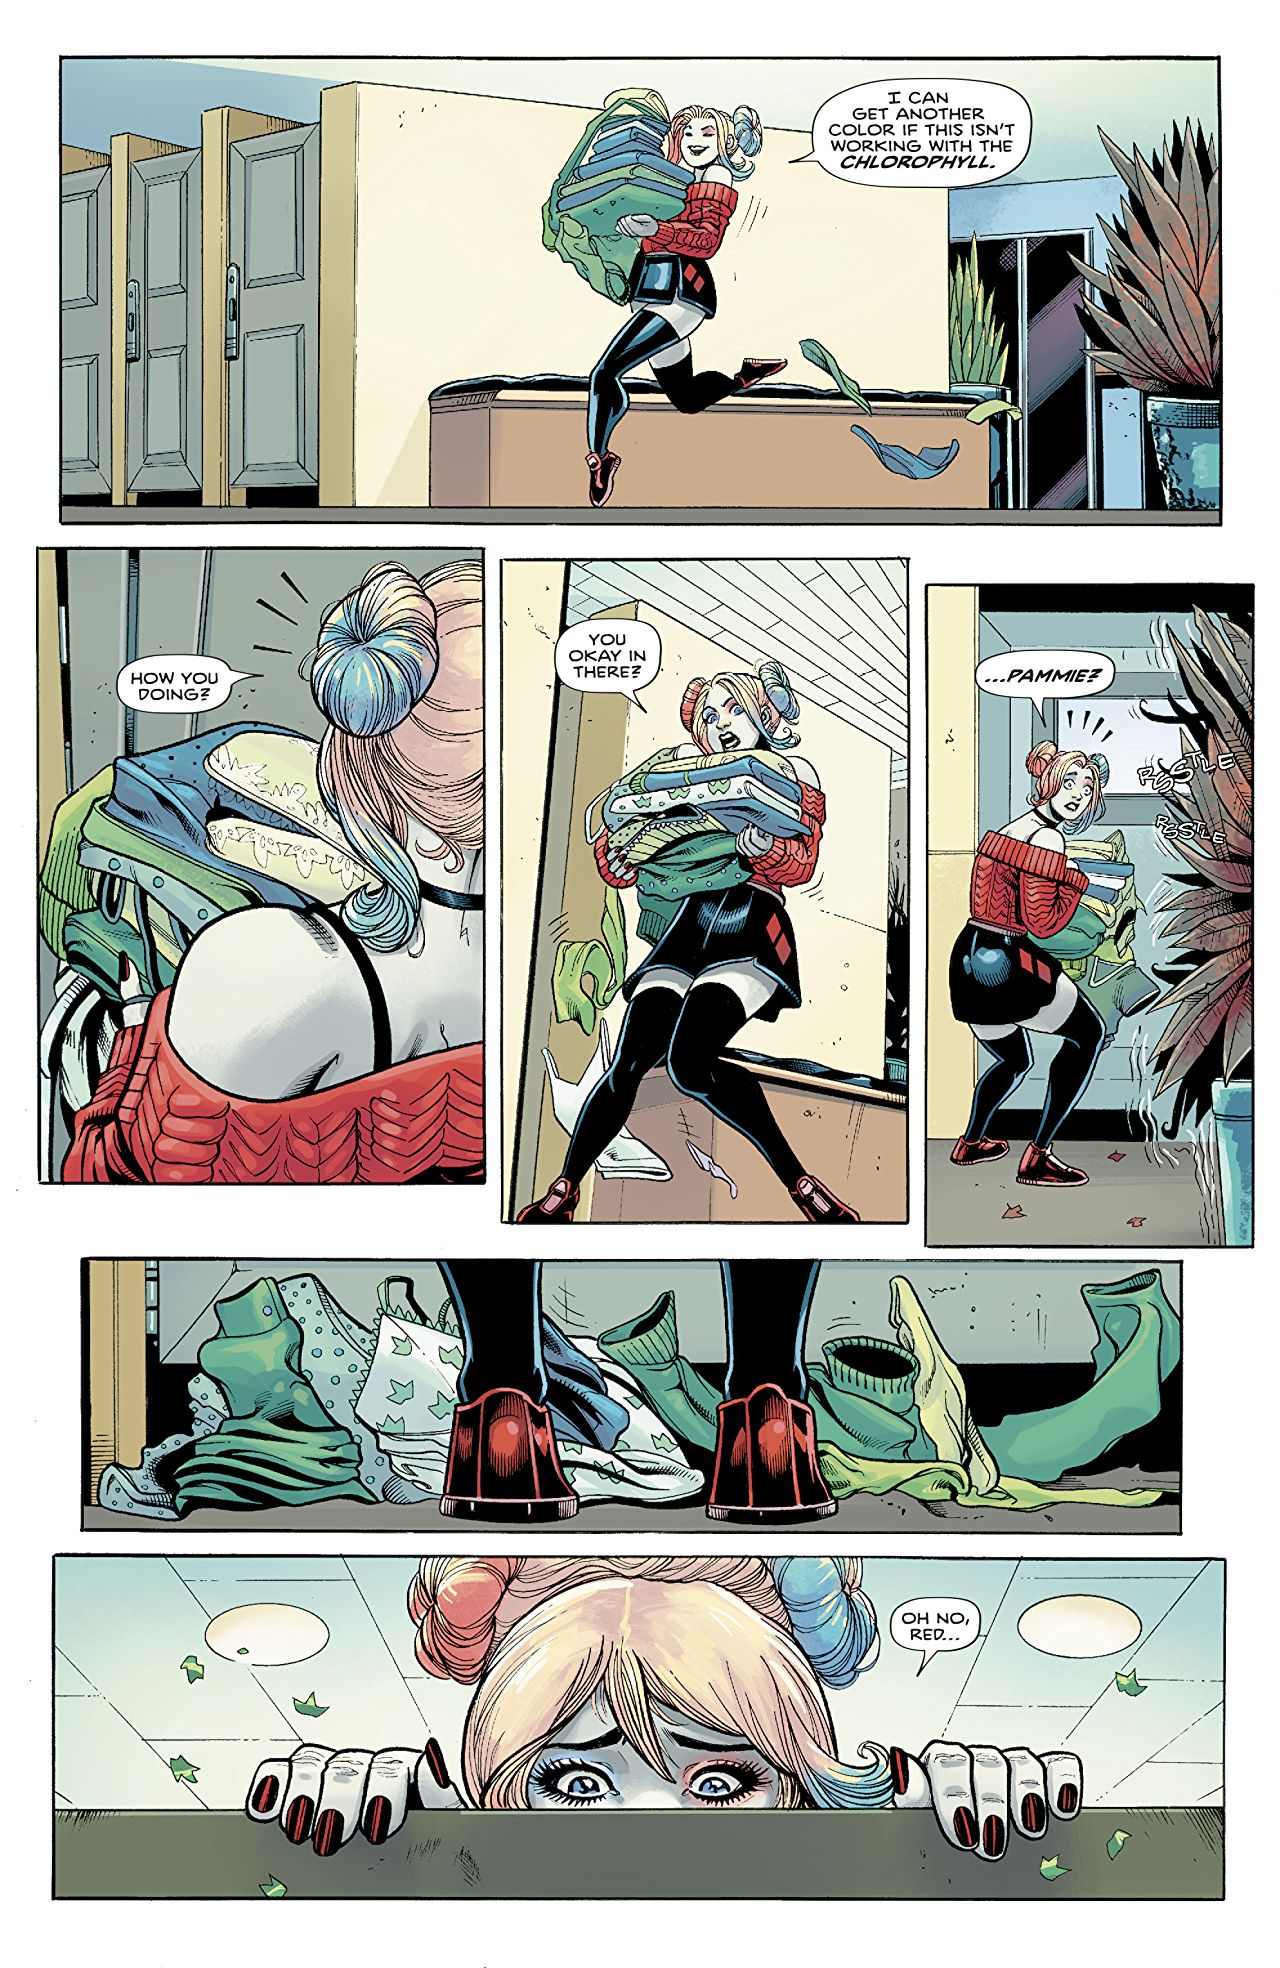 Harley Quinn and Poison Ivy #1, Page 5, Harley Giving Clothes to Ivy.